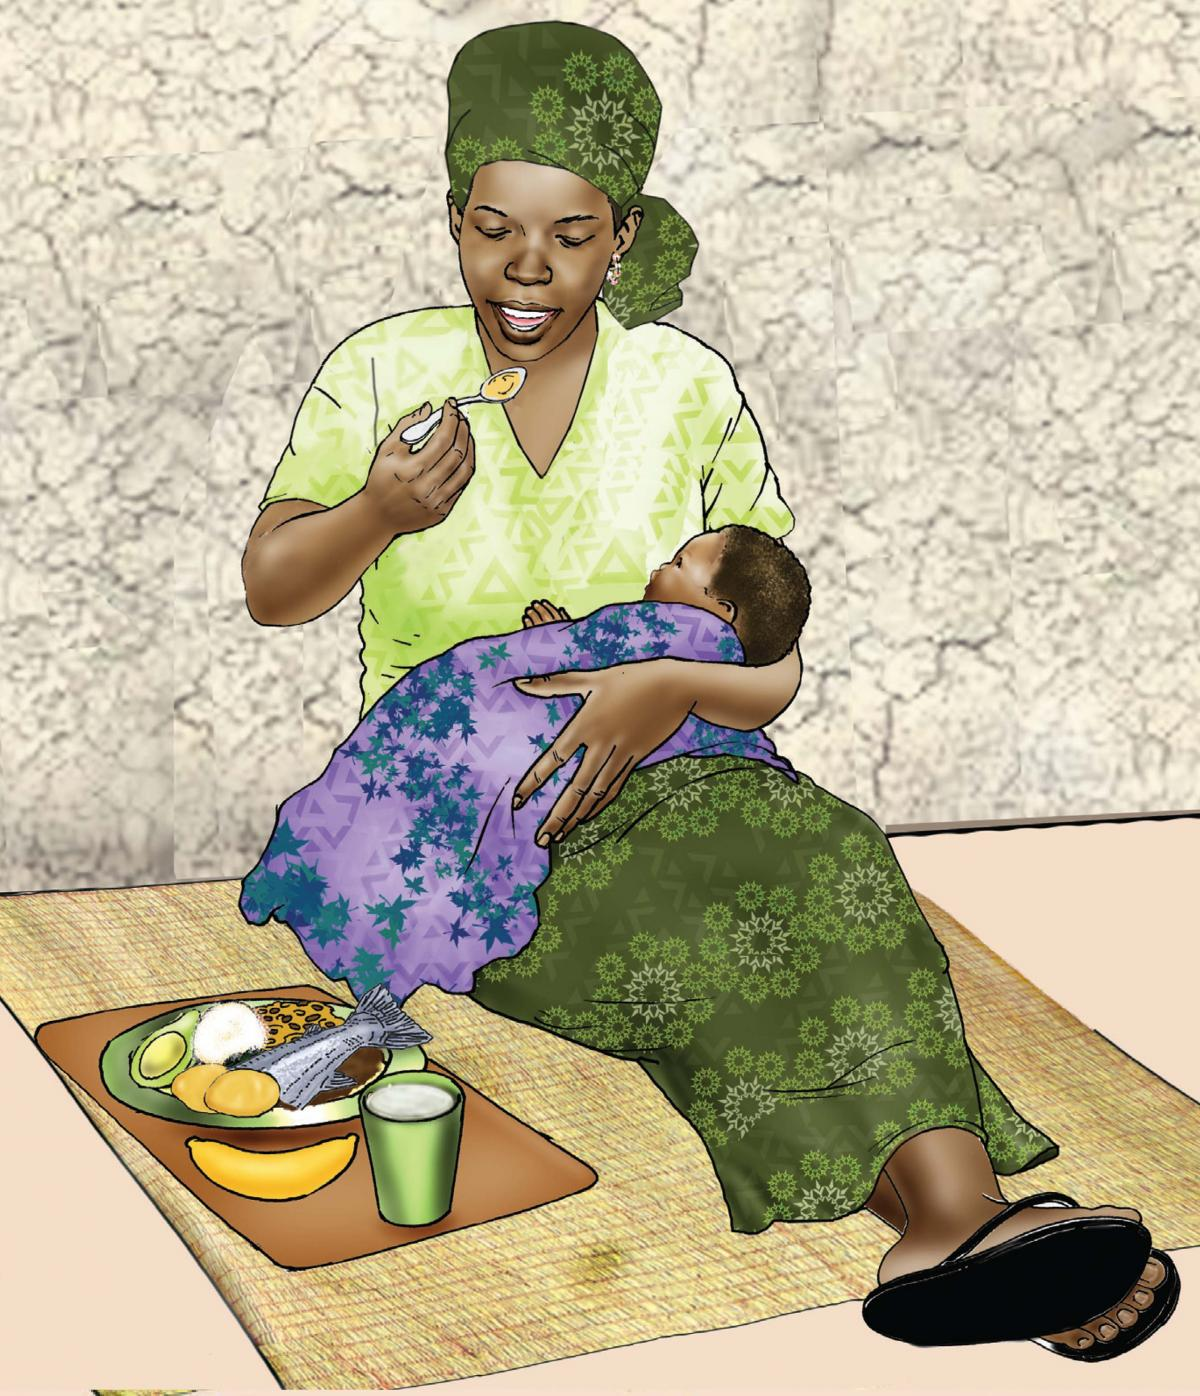 Maternal Nutrition - Mother eating healthy meal - 02 - Niger